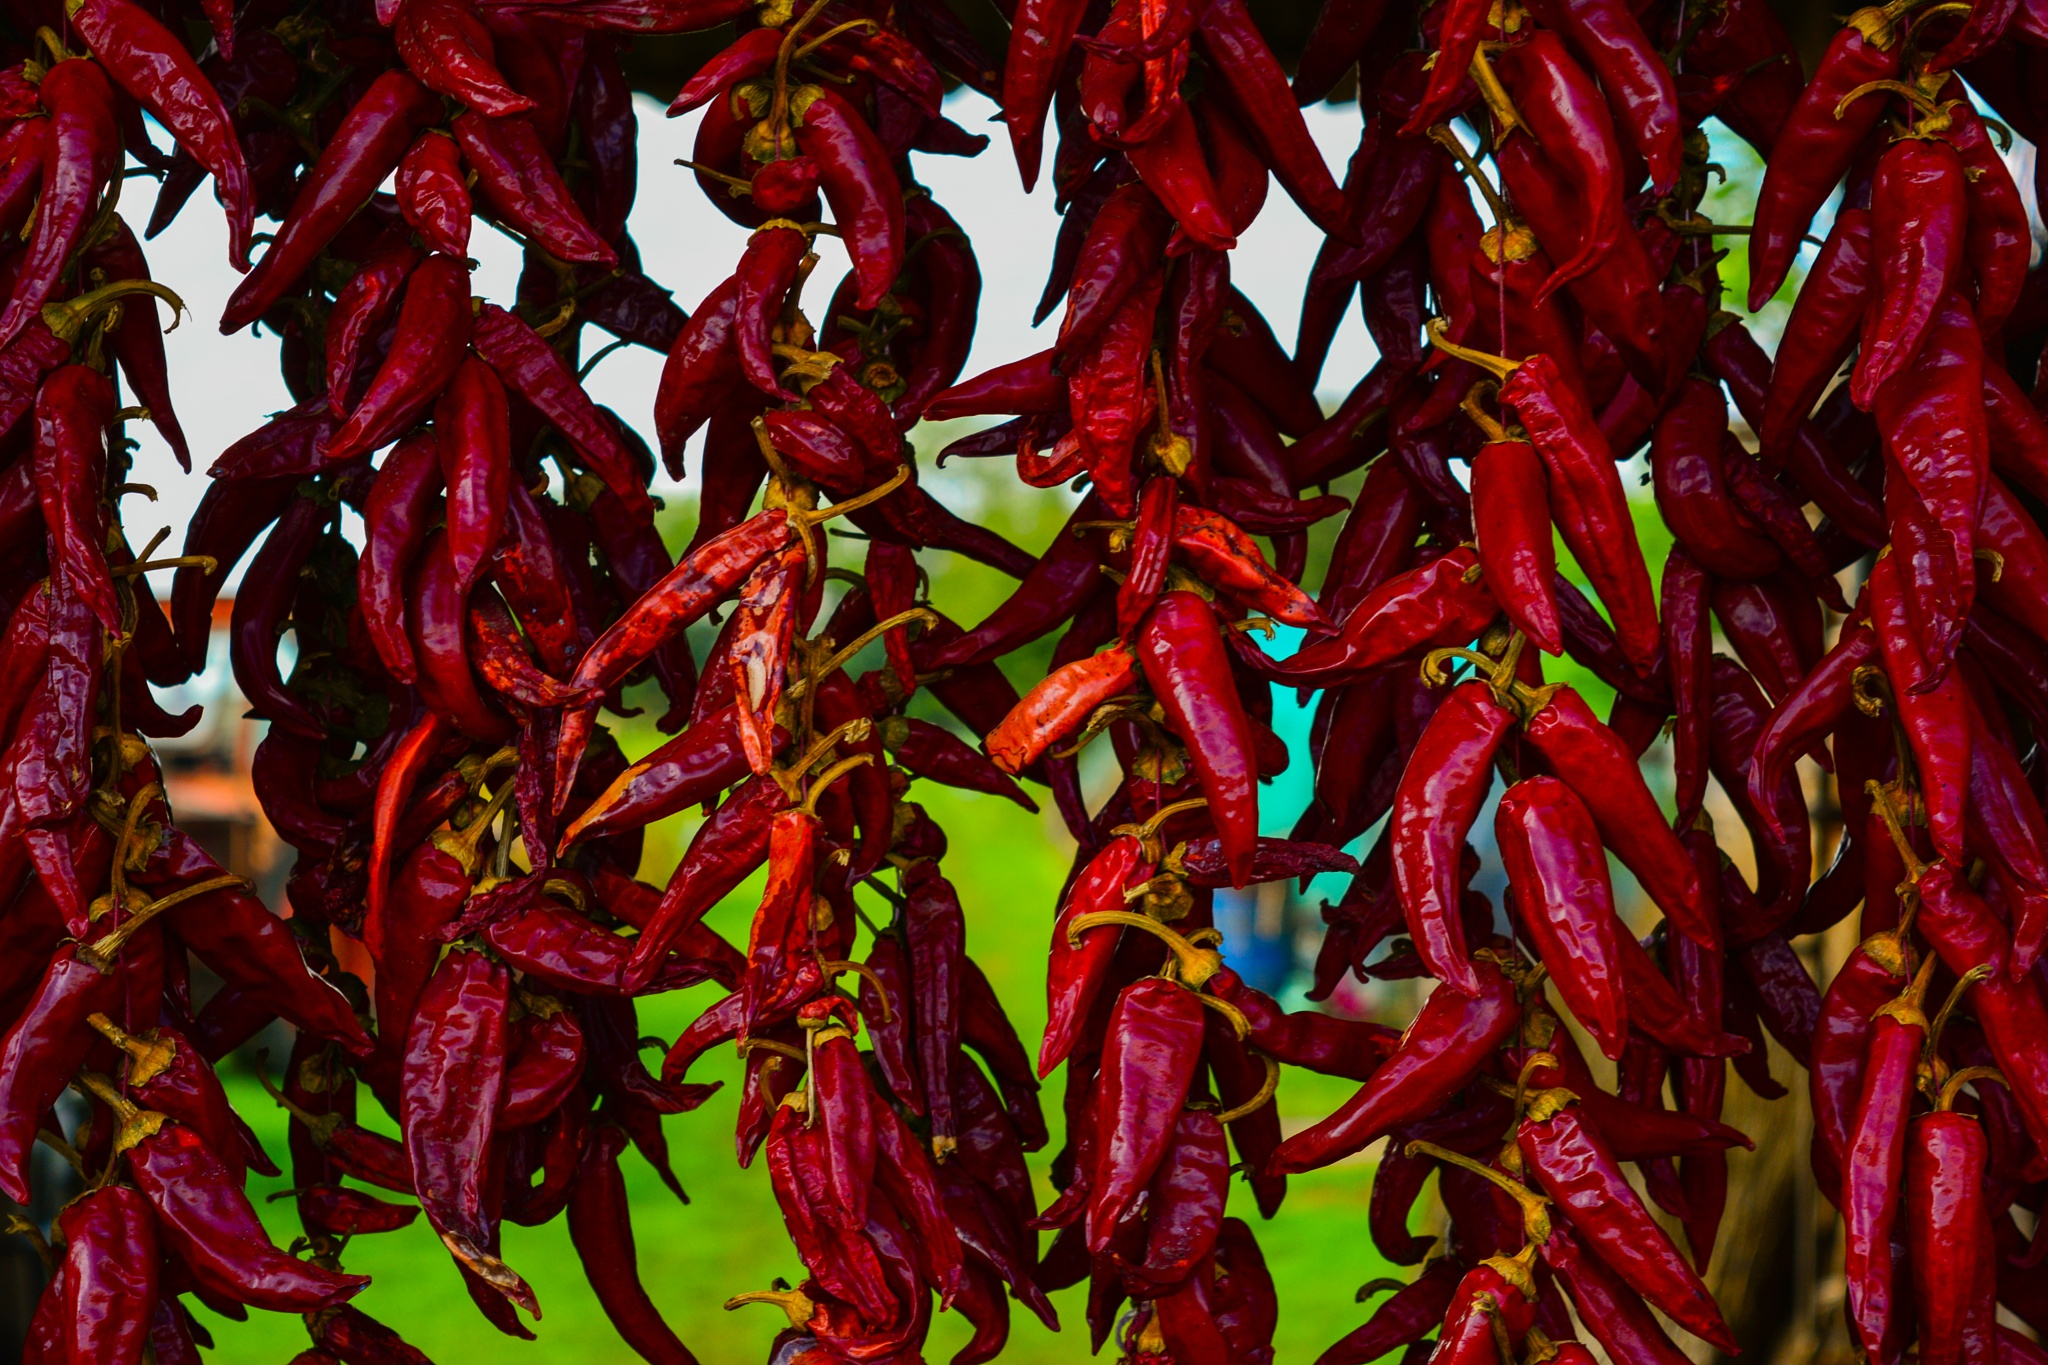 Red peppers by Agatha Taylor